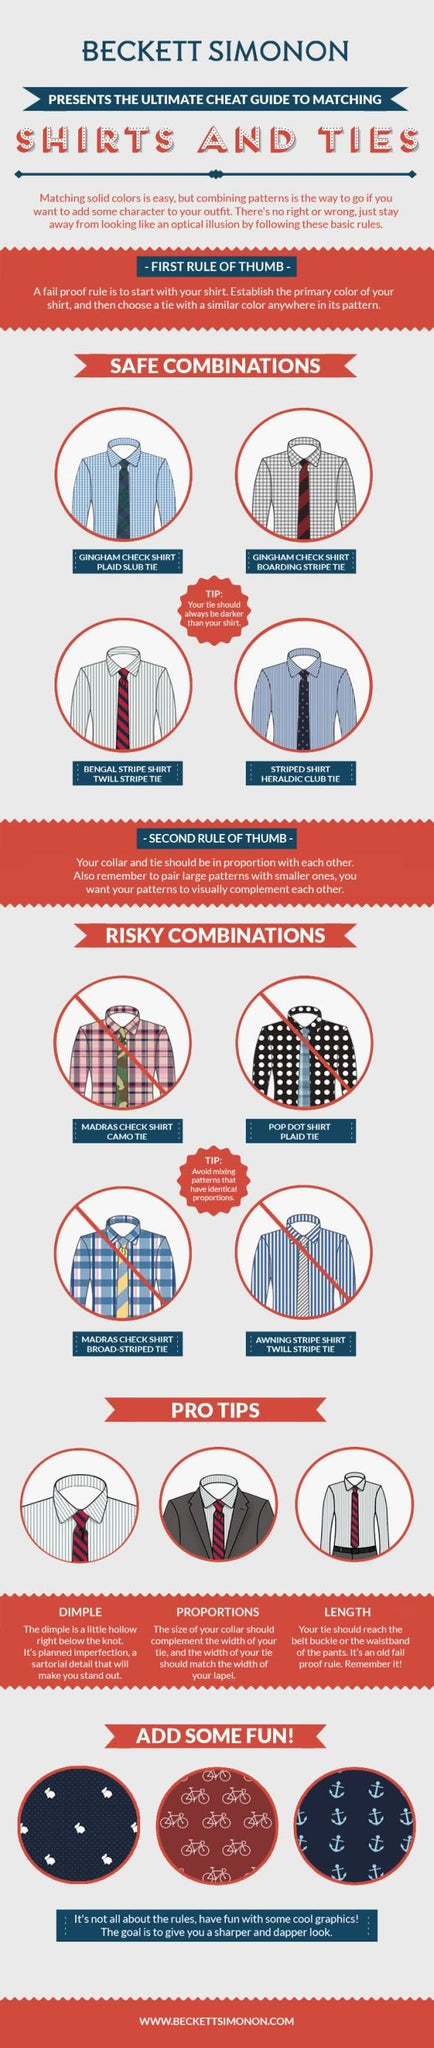 How to Match Shirts and Ties